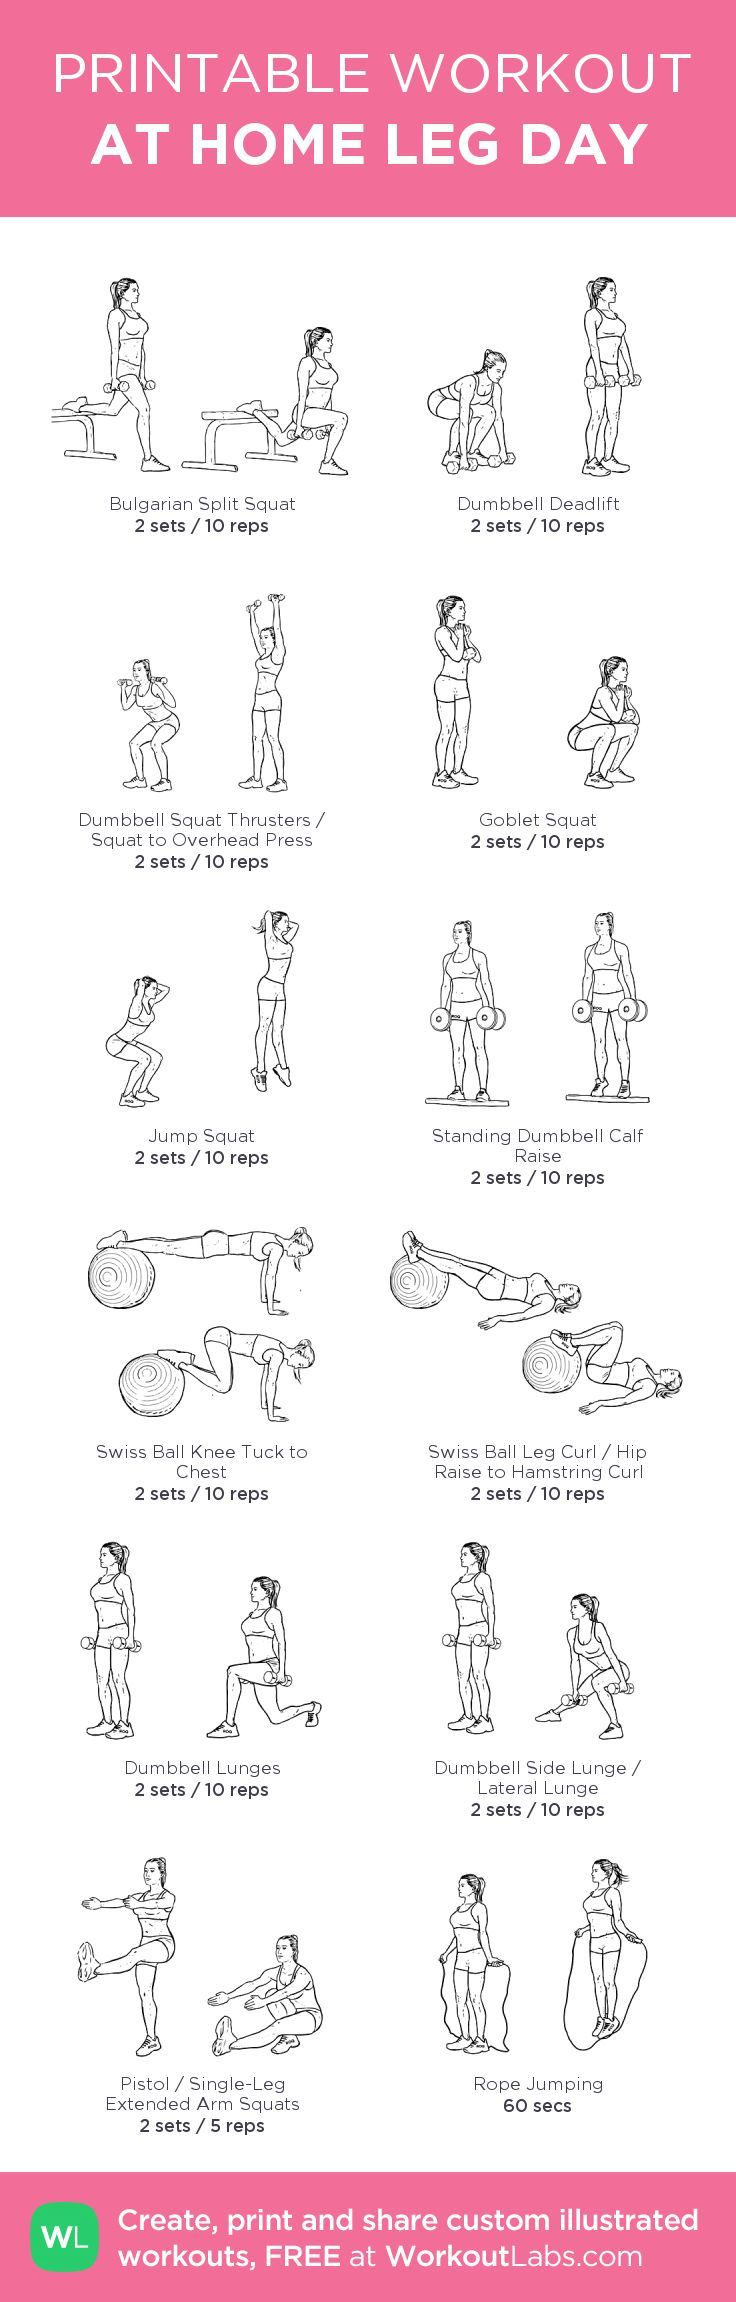 Fitness Motivation : 12 At Home Leg Day Workout for Women